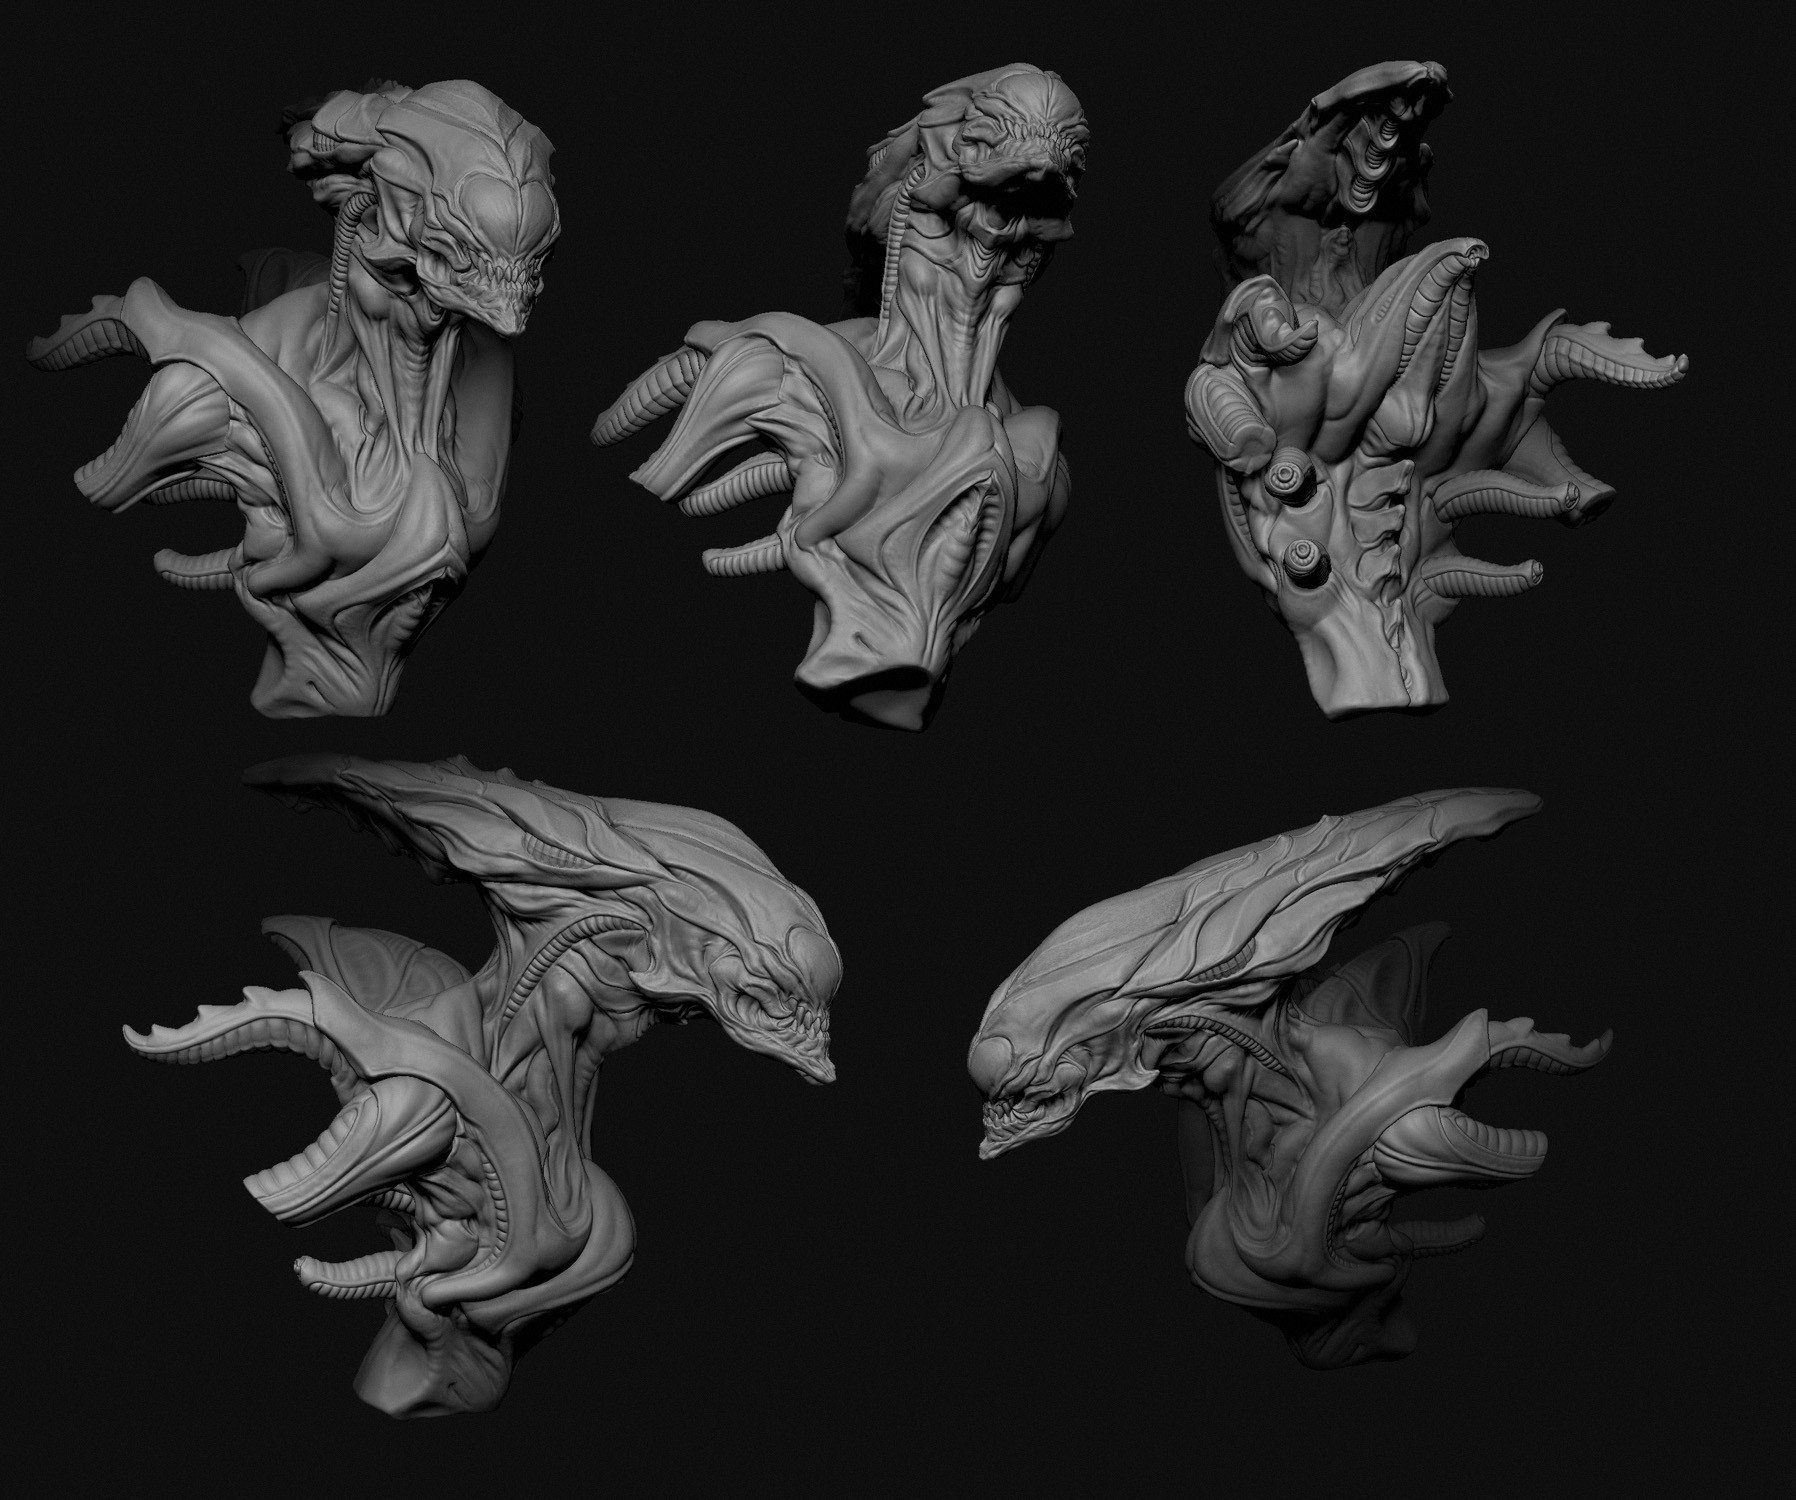 Tiago rios xenomorph views01